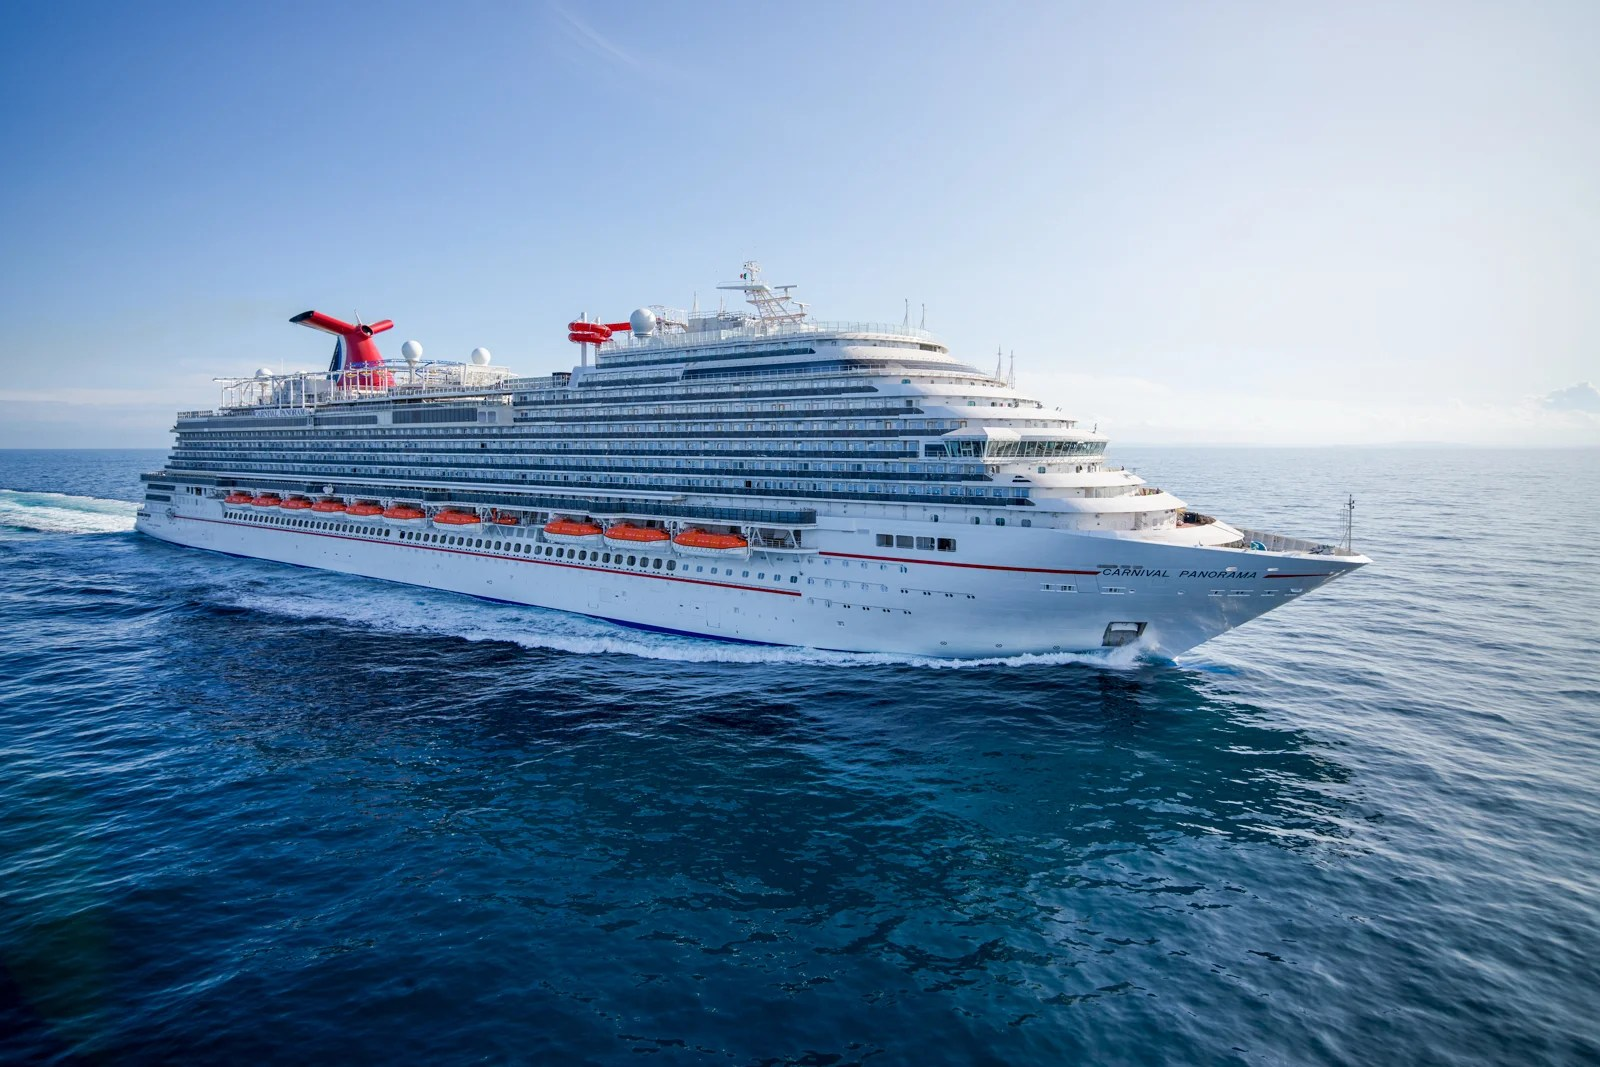 Cruise giant Carnival Corporation to remove more ships from its fleet